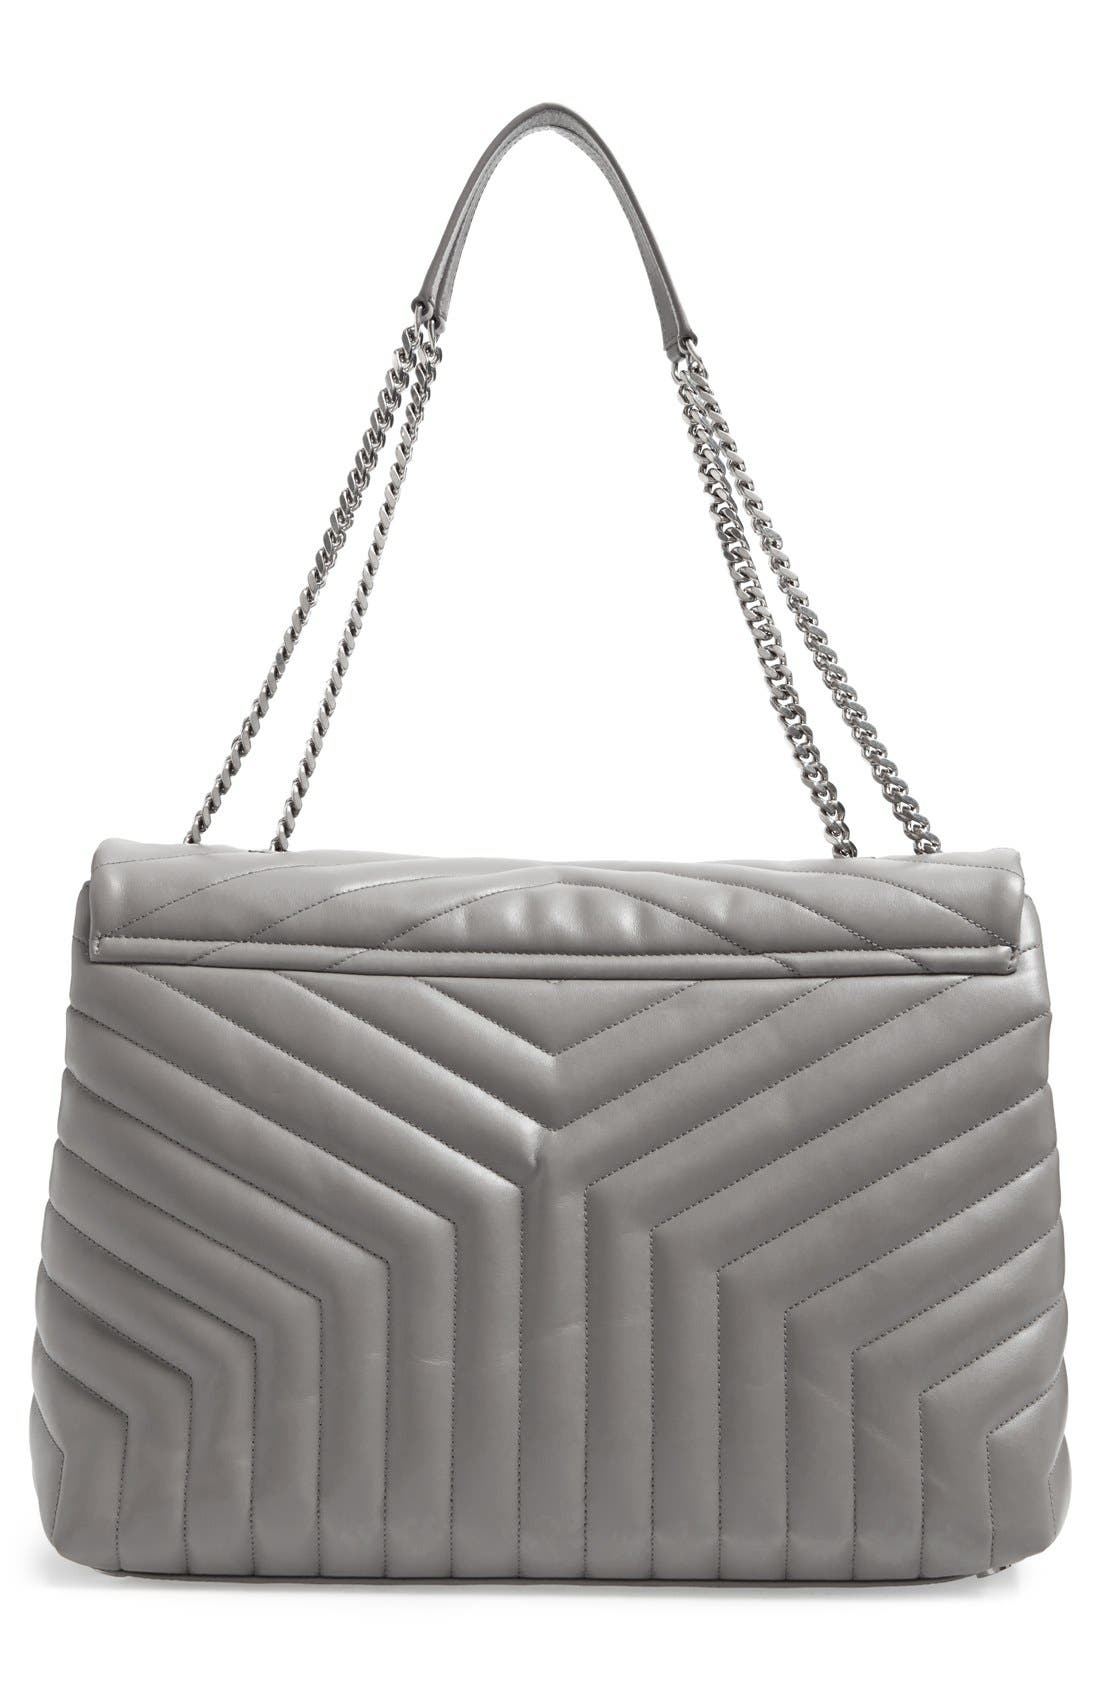 Monogram Quilted Leather Slouchy Shoulder Bag,                             Alternate thumbnail 3, color,                             OYSTER